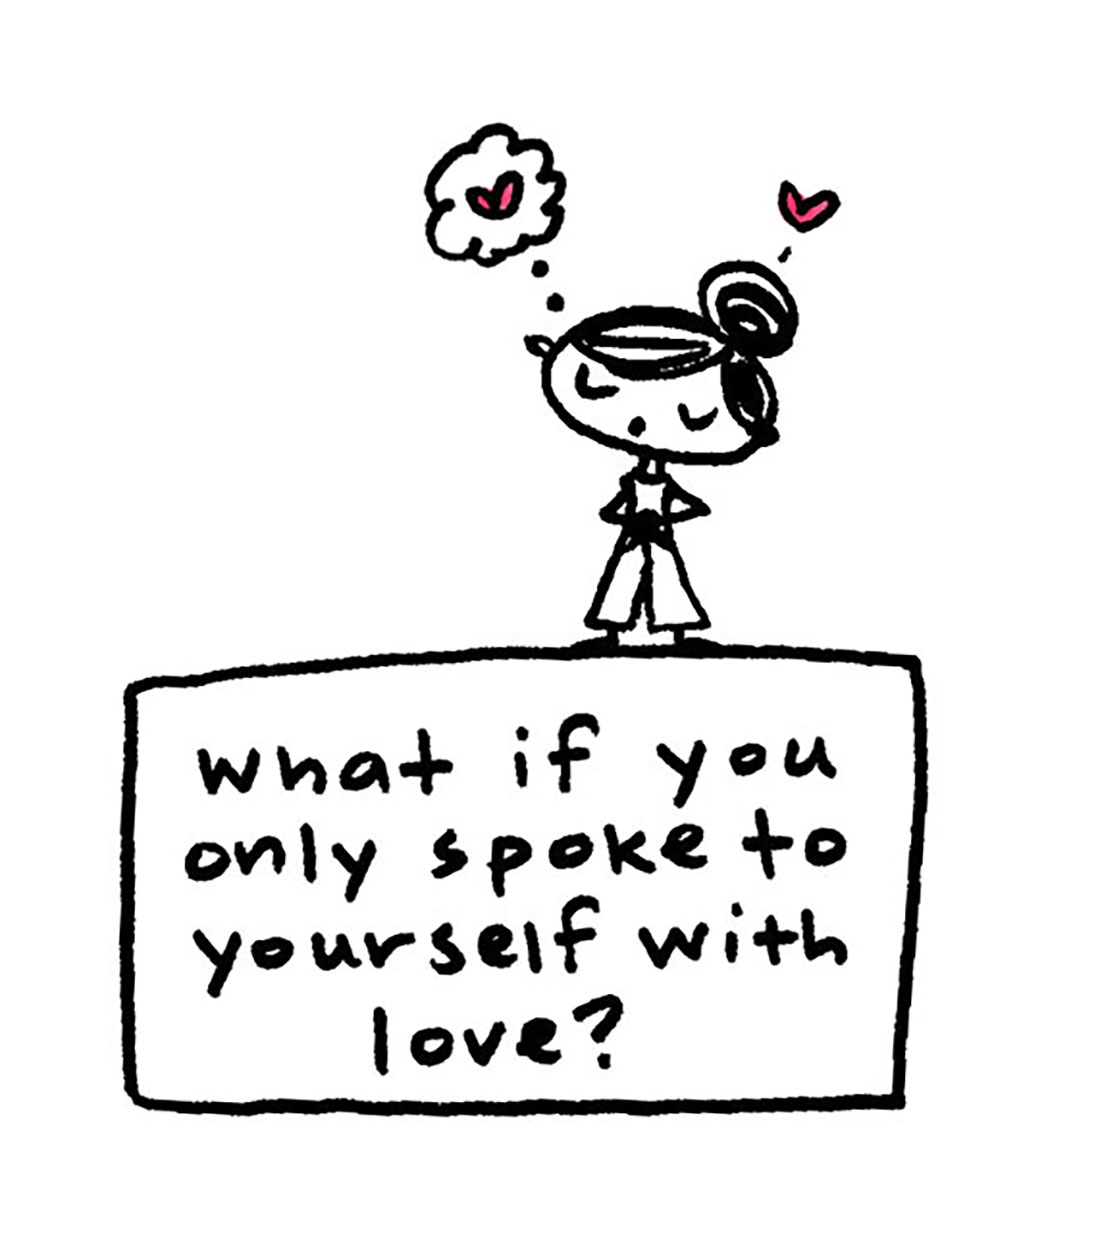 what if you only spoke to yourself with love.